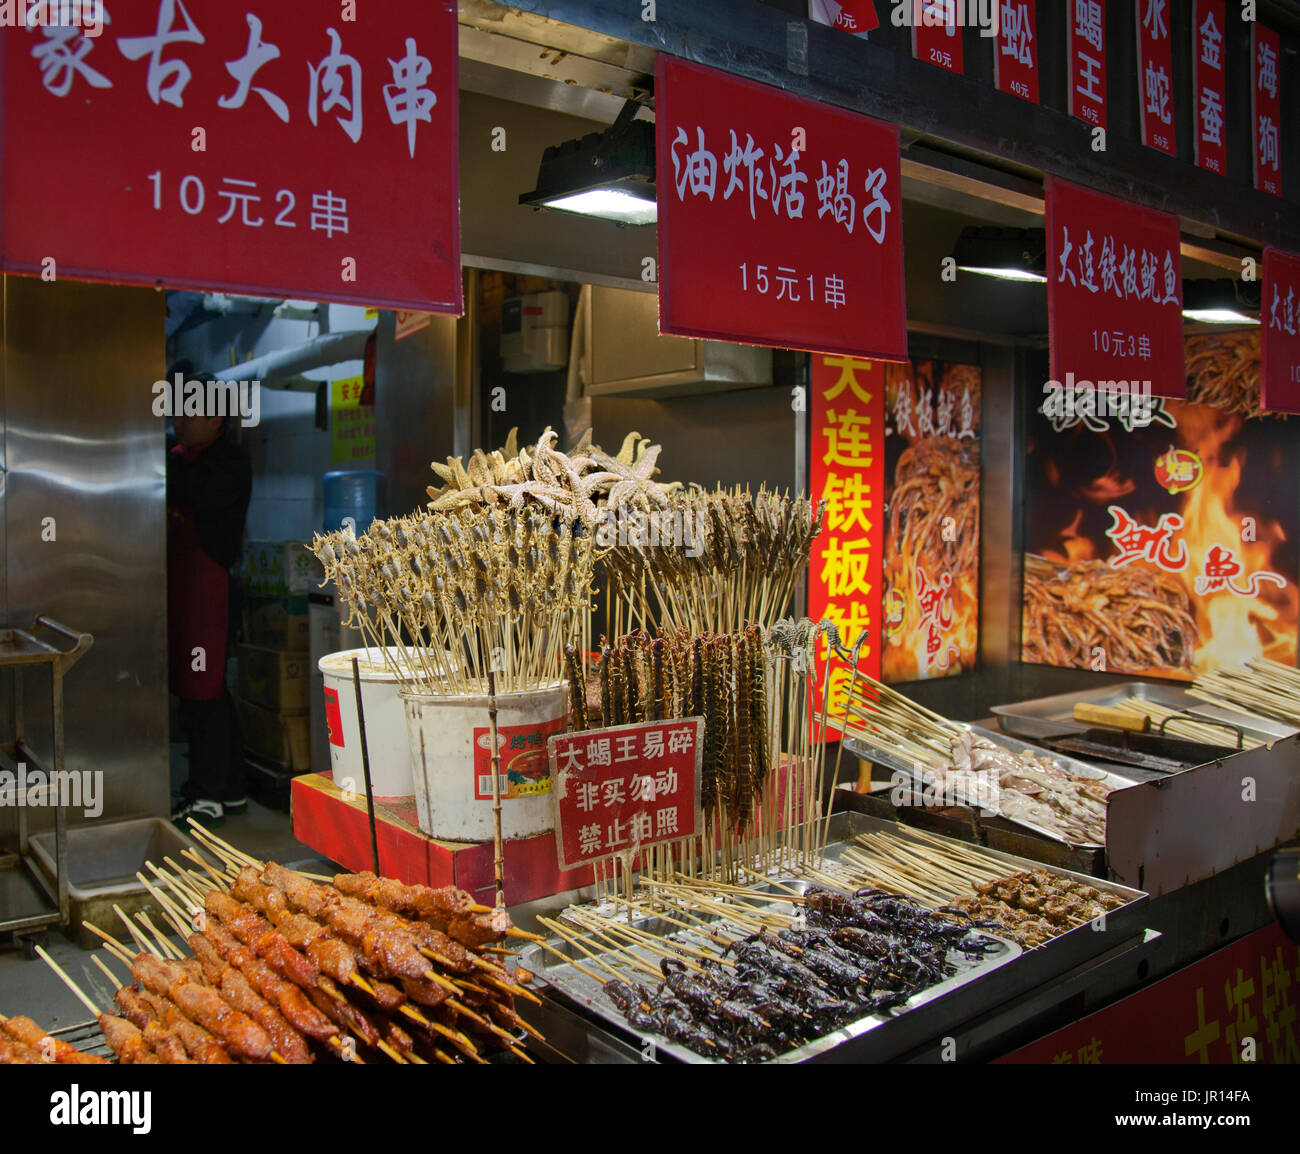 Night Market, Beijing, China.  Night Market, Beijing, China. Starfish on a skewer? Bugs?  Centipedes? Scorpions?  Such 'delicacies' await brave foodie - Stock Image